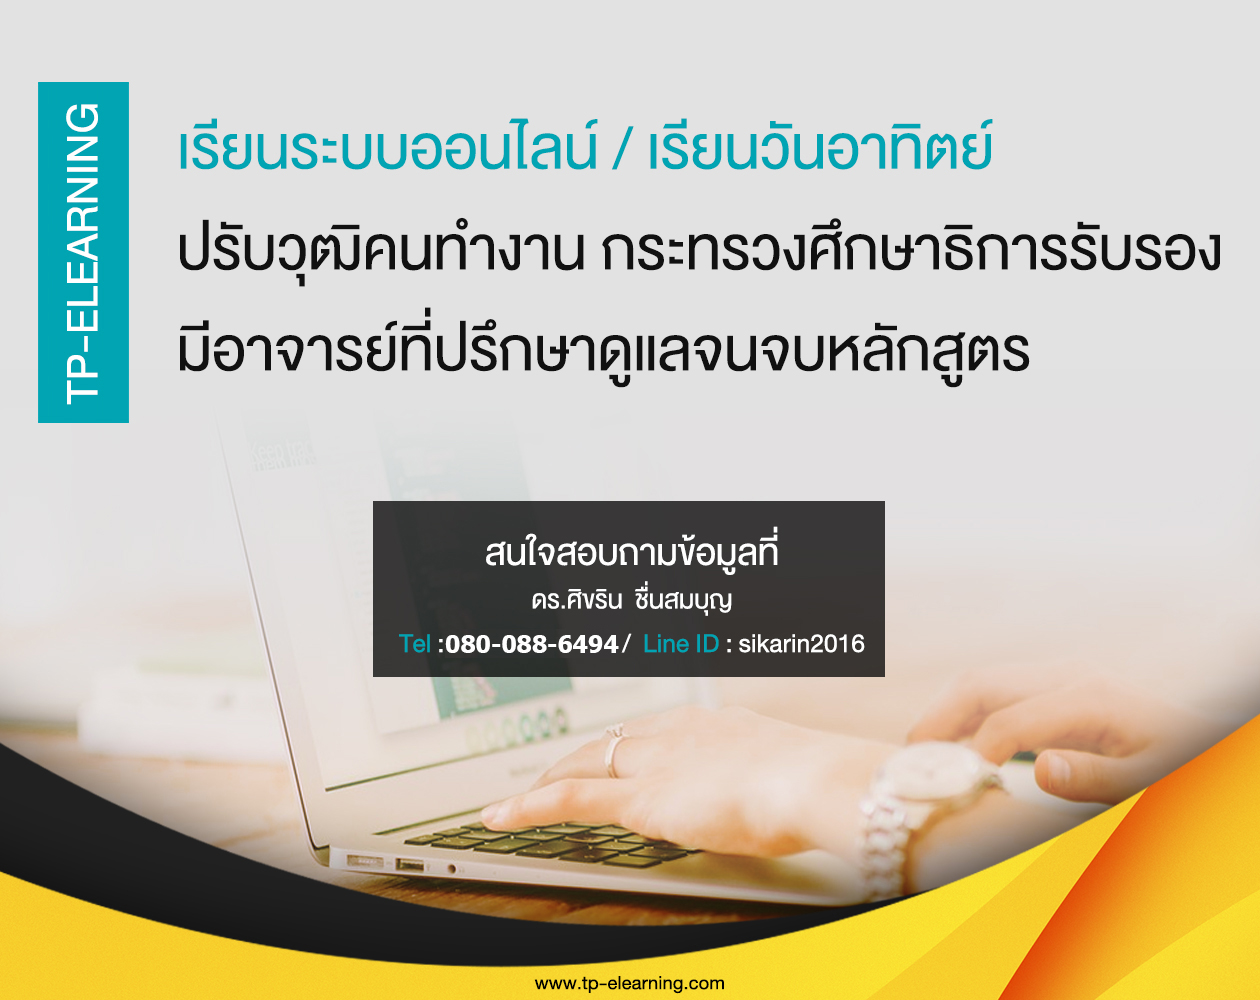 tpelearning